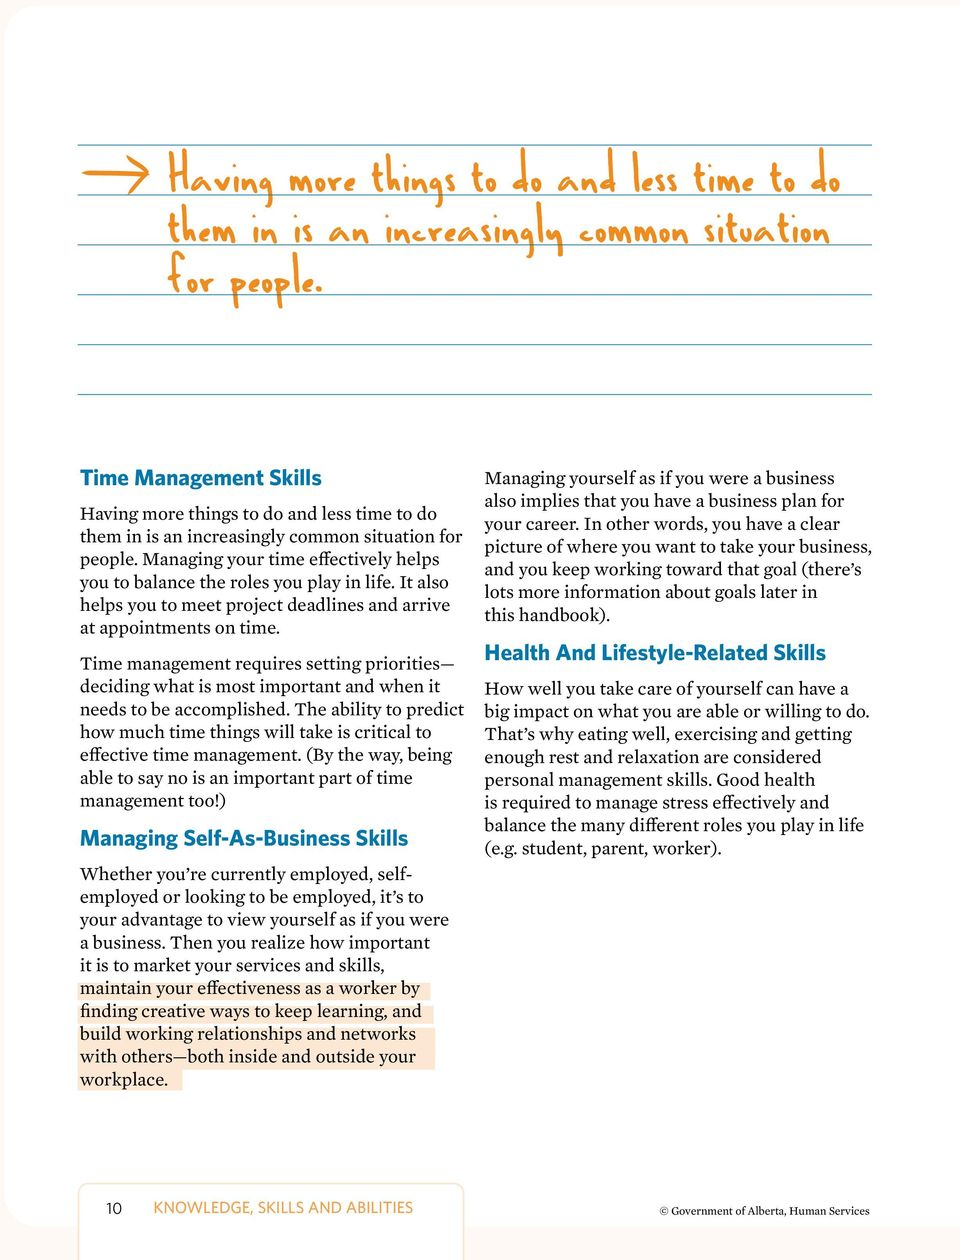 Time management requires setting priorities deciding what is most important and when it needs to be accomplished.